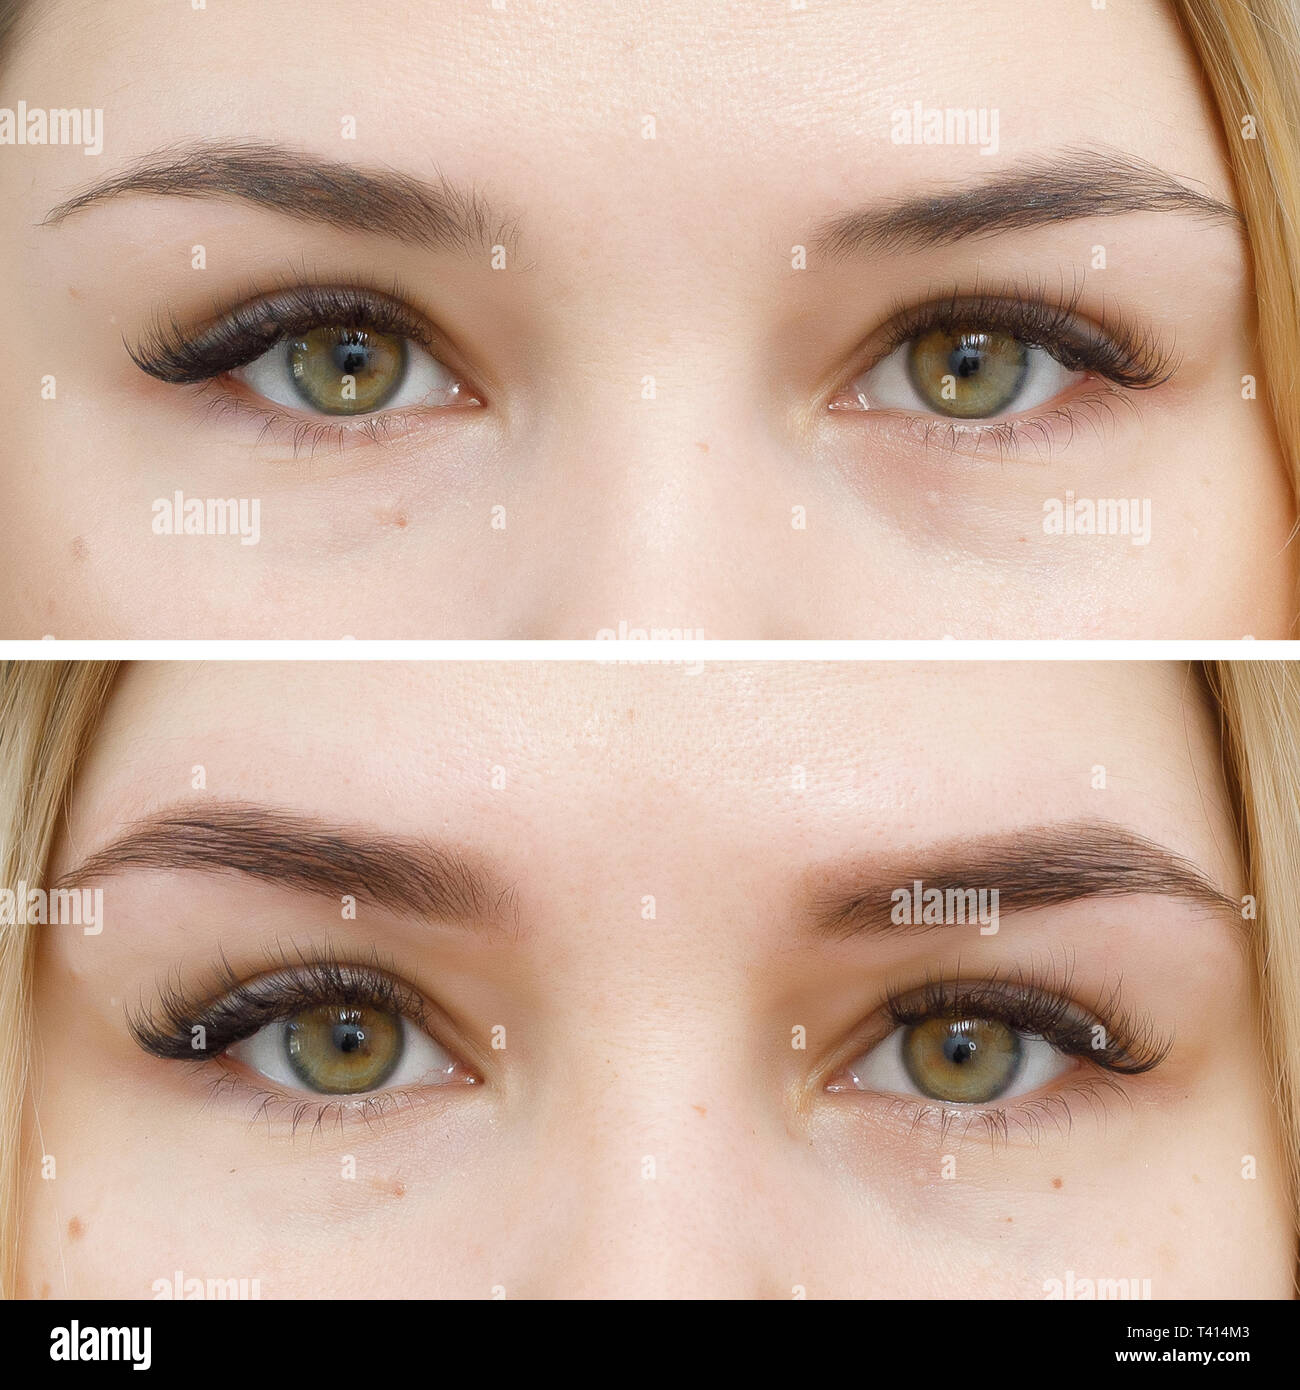 Photo Comparison Before And After Permanent Makeup